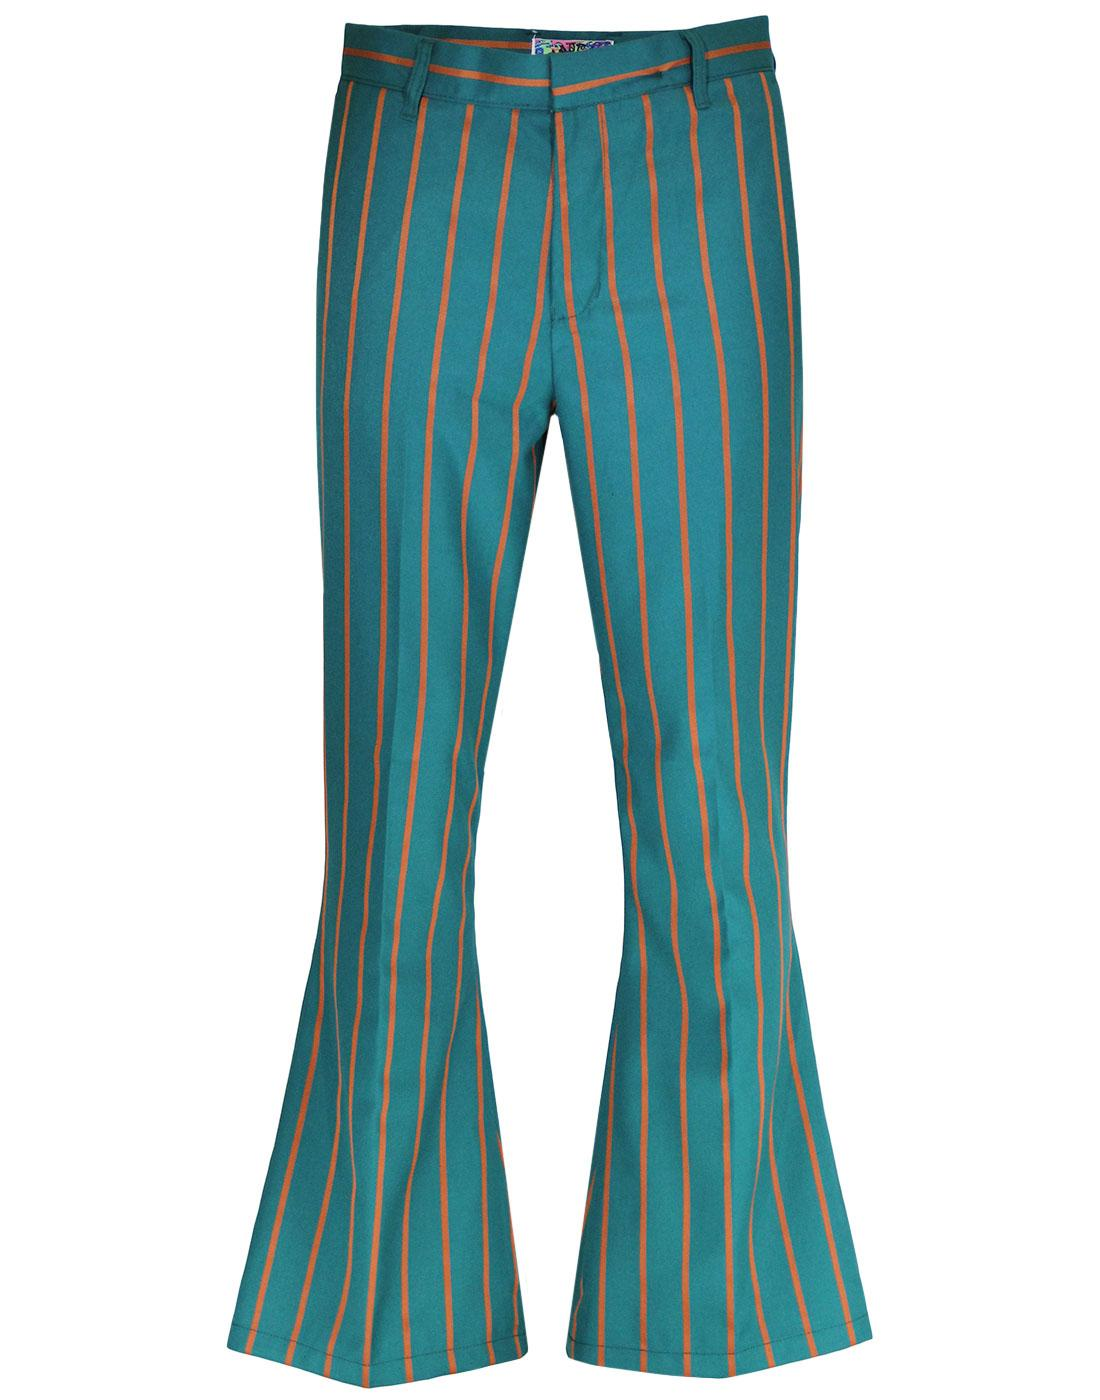 madcap england relic stripe bellbottom trousers